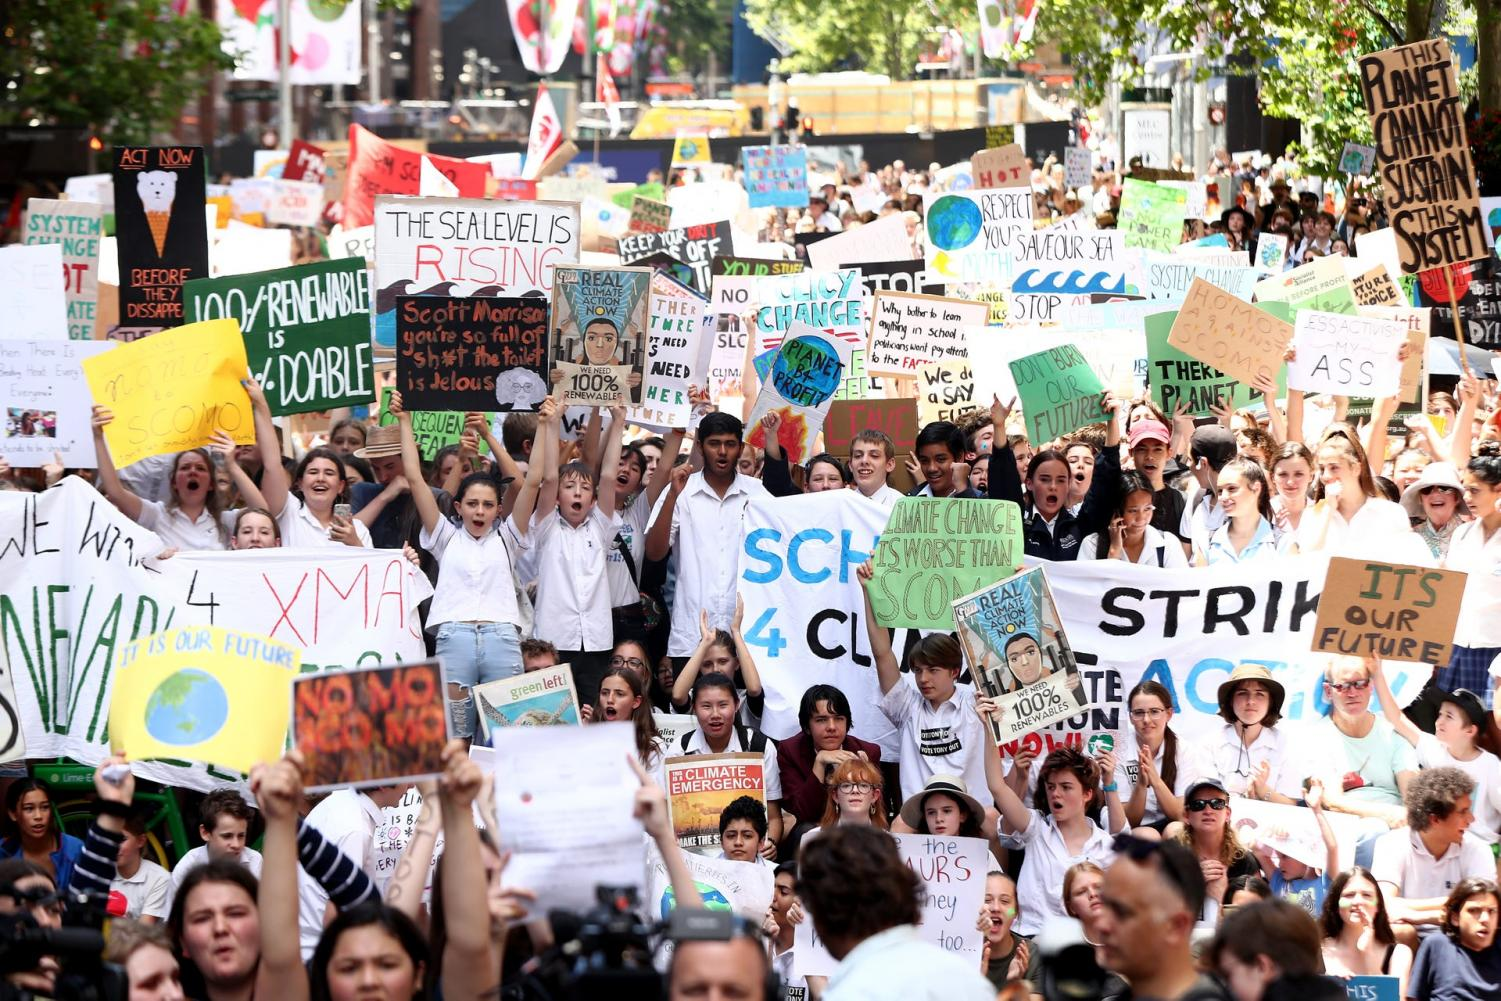 Students gather to demand the government take action on climate change at Martin Place on November 30, 2018 in Sydney, Australia. Inspired by Greta Thunberg, thousands of students walked out of school in cities across Australia to demand government action. Prime Minister Scott Morrison urged students to stay in school, telling parliament,